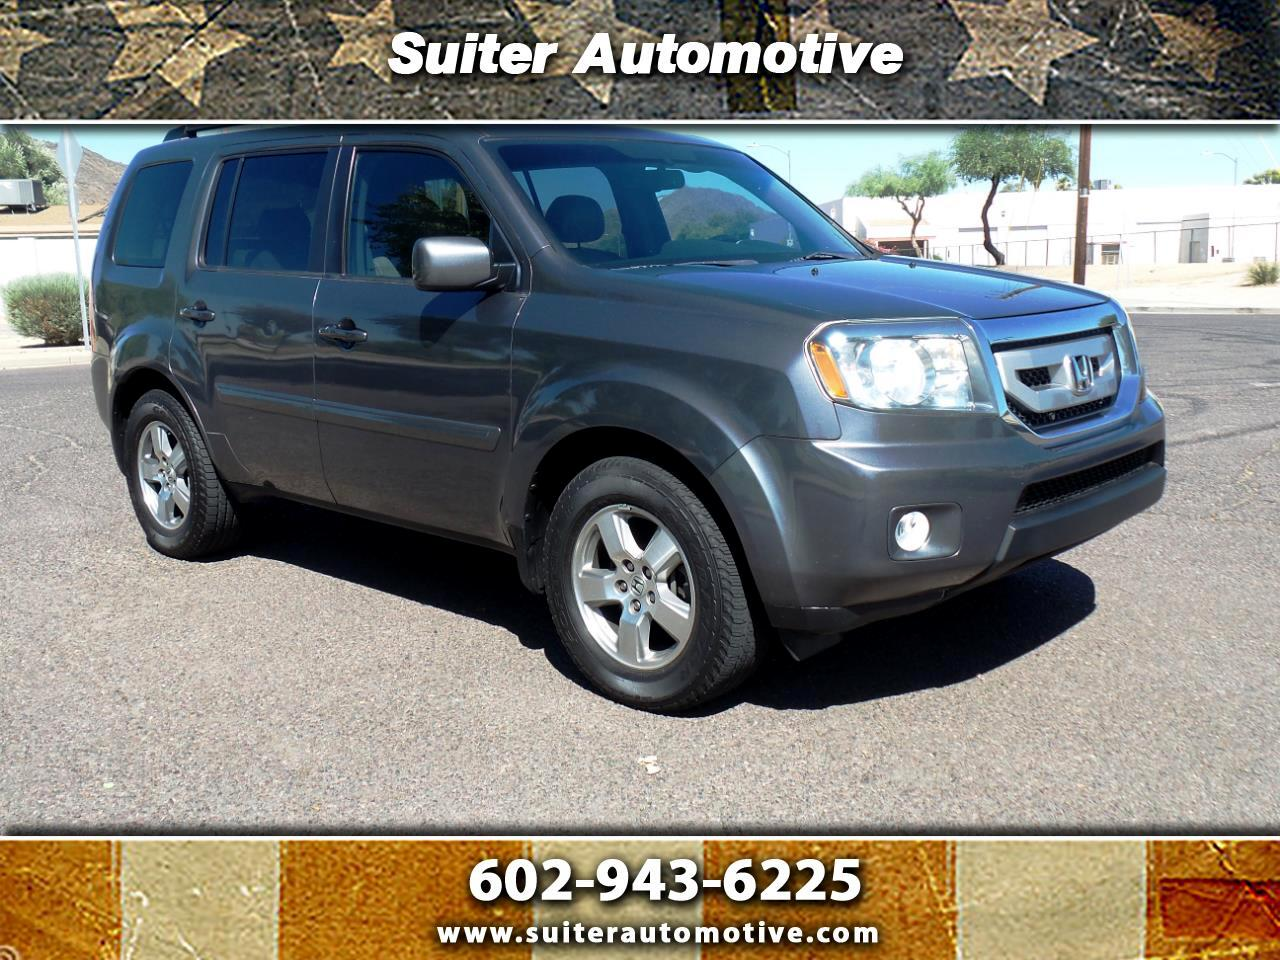 2011 Honda Pilot EX-L 2WD 5-Spd AT with Navigation